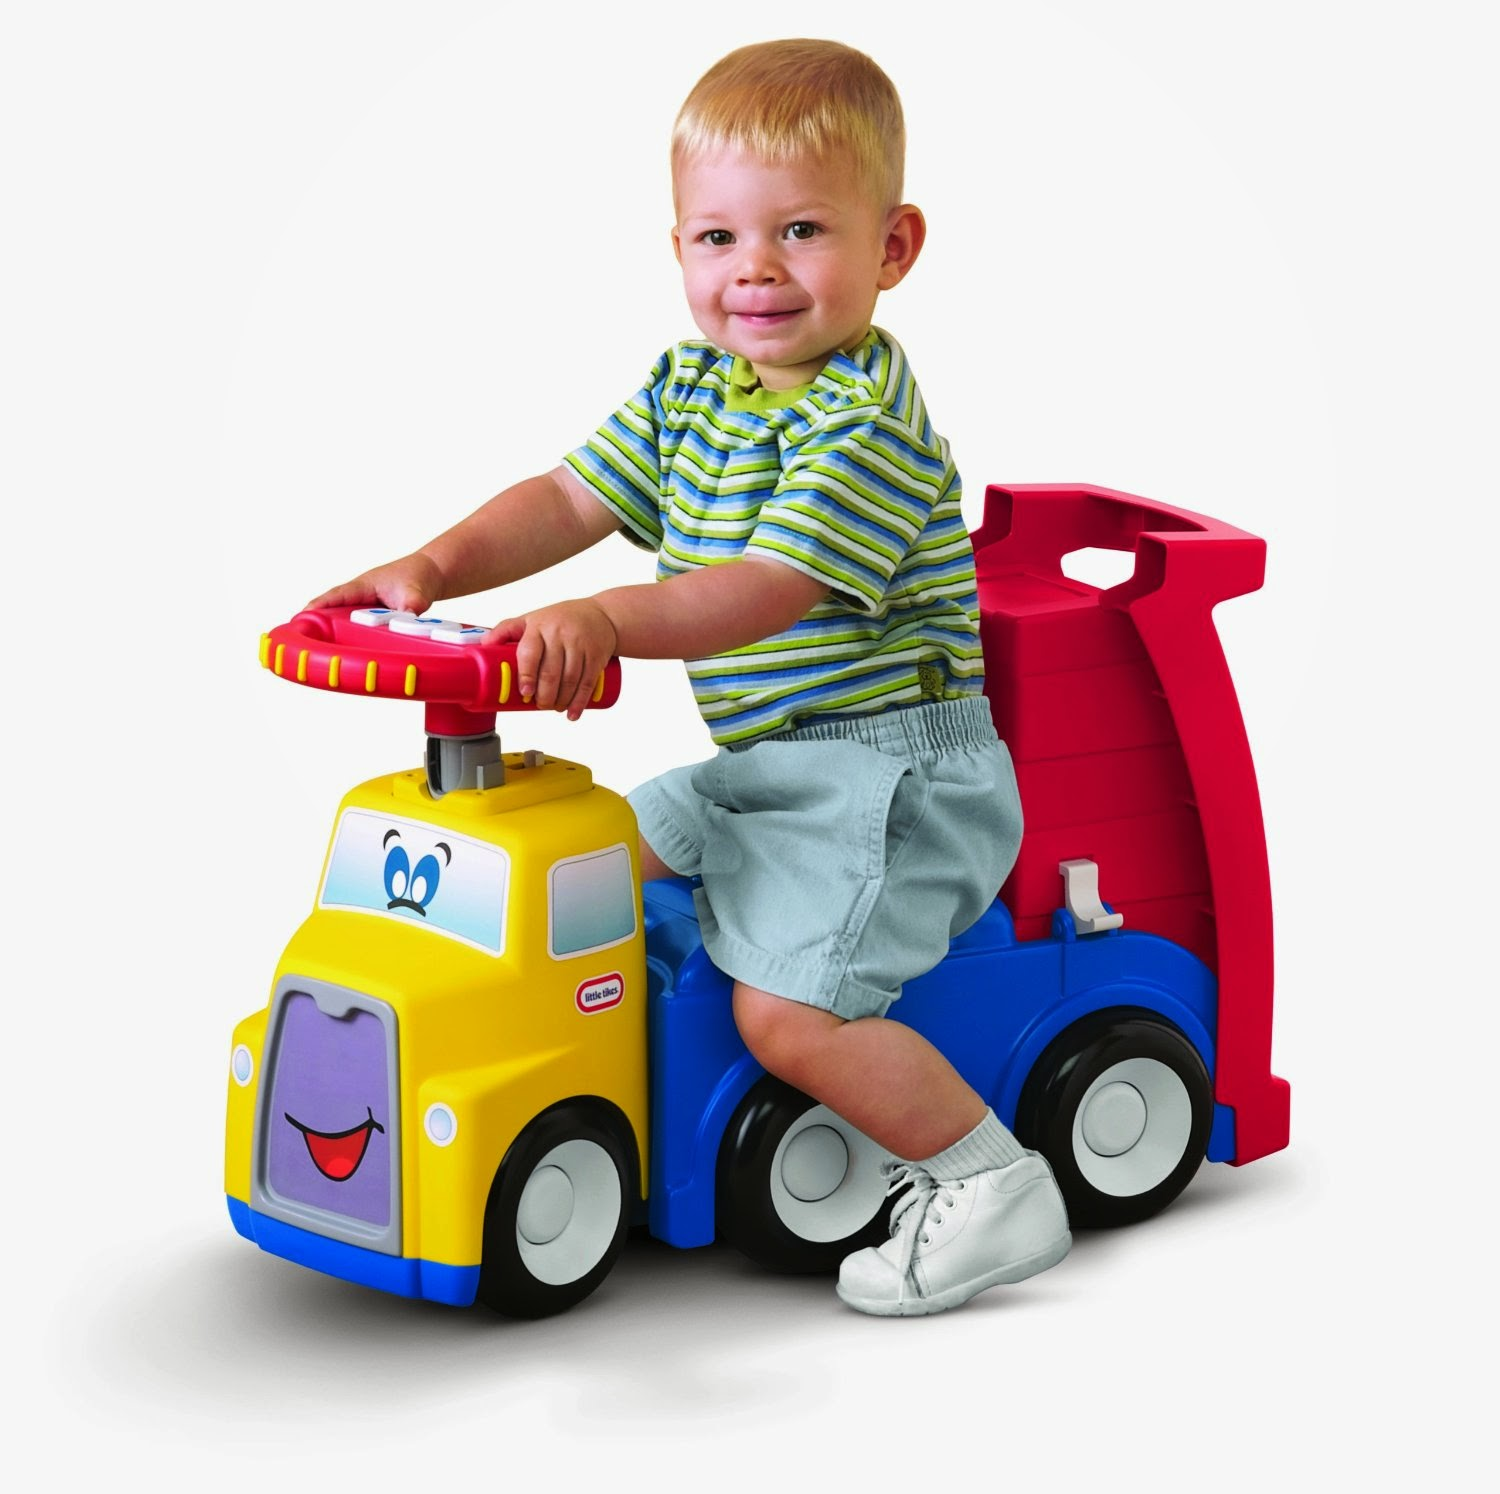 Toddler Approved!: 7 Favorite Ride-On Toys for Toddlers ...